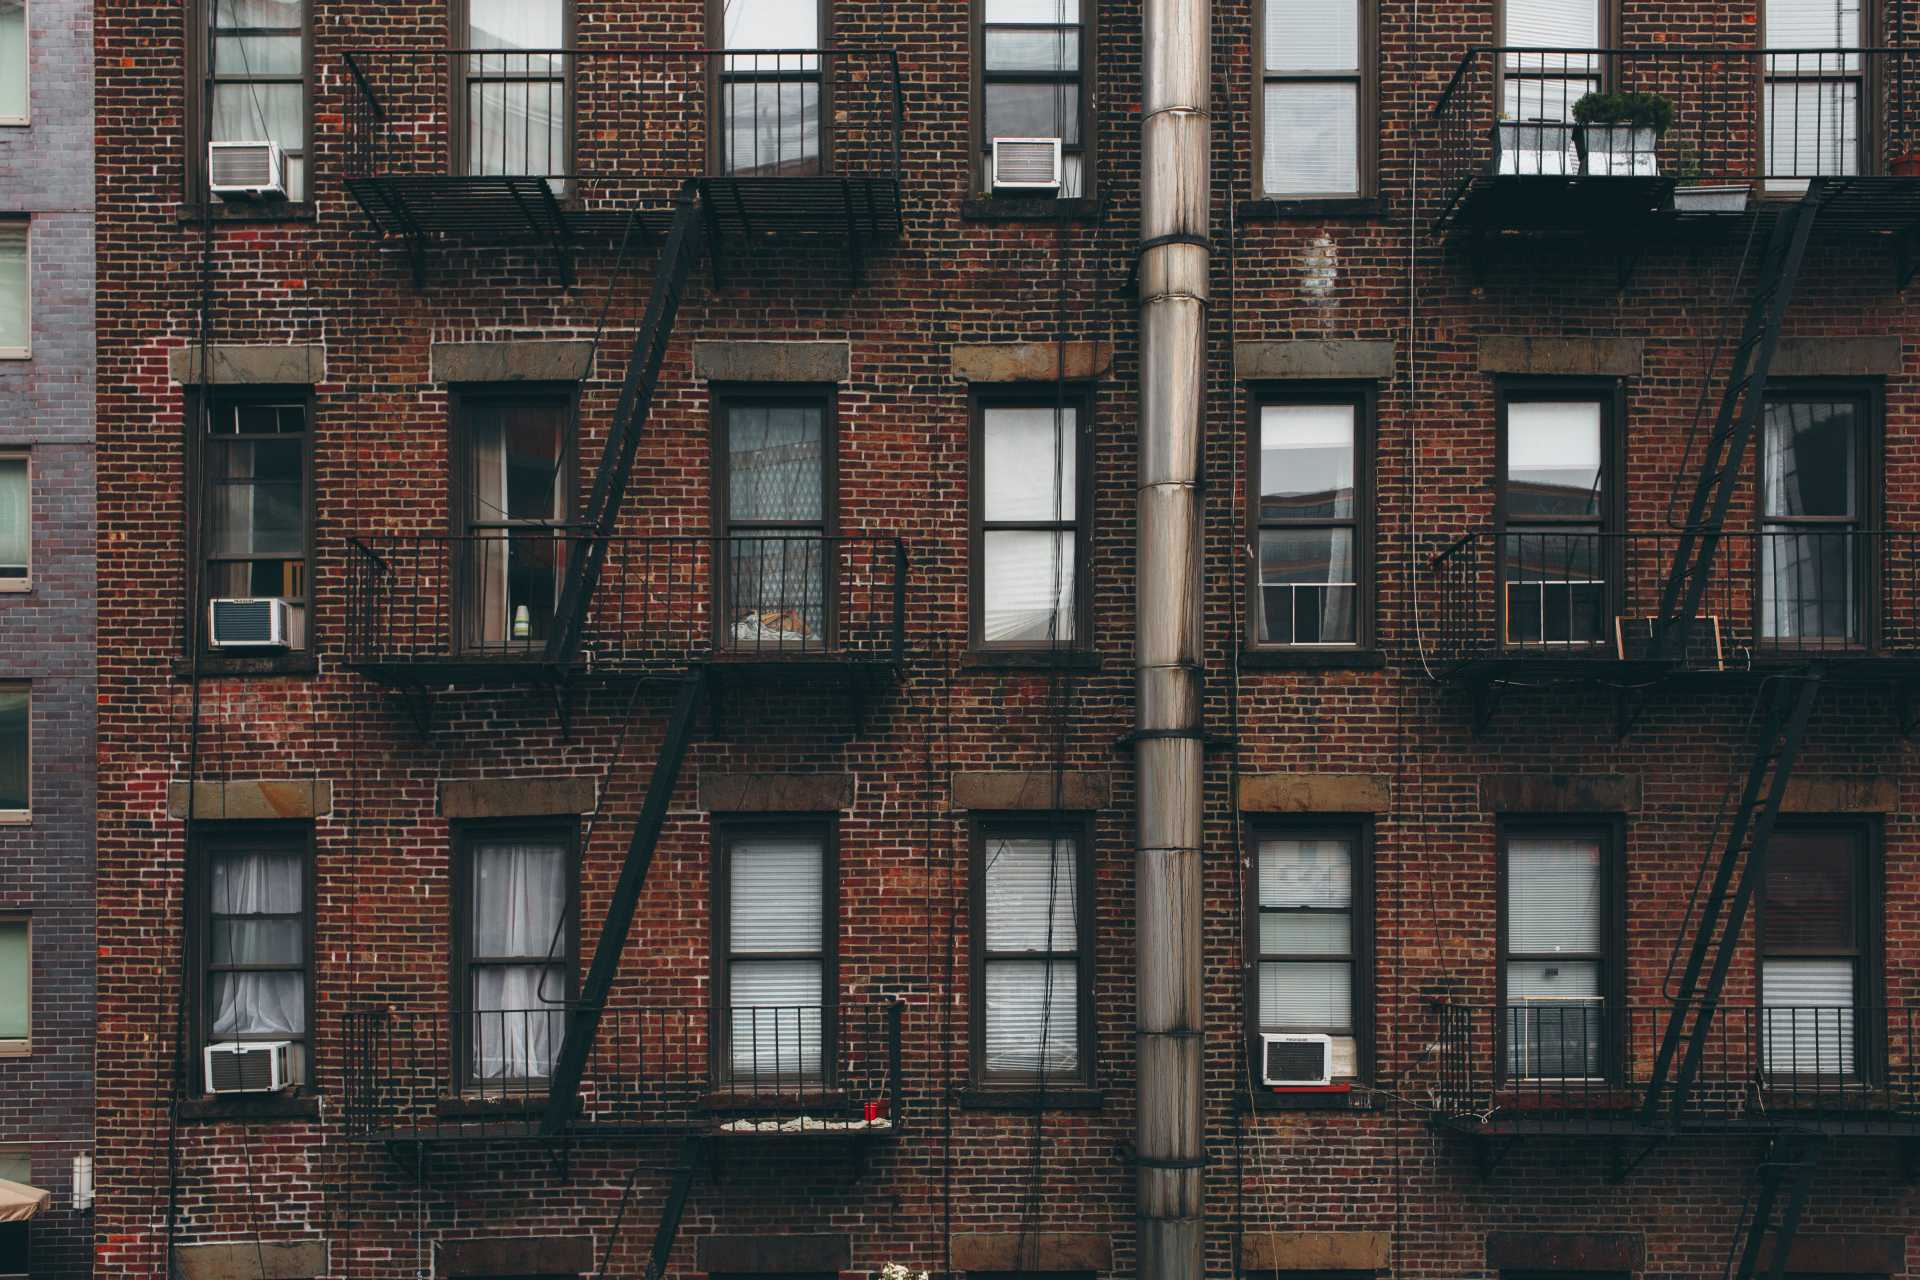 A brick apartment building with fire escapes. Photo courtesy of Anthony Fomin on Unsplash.